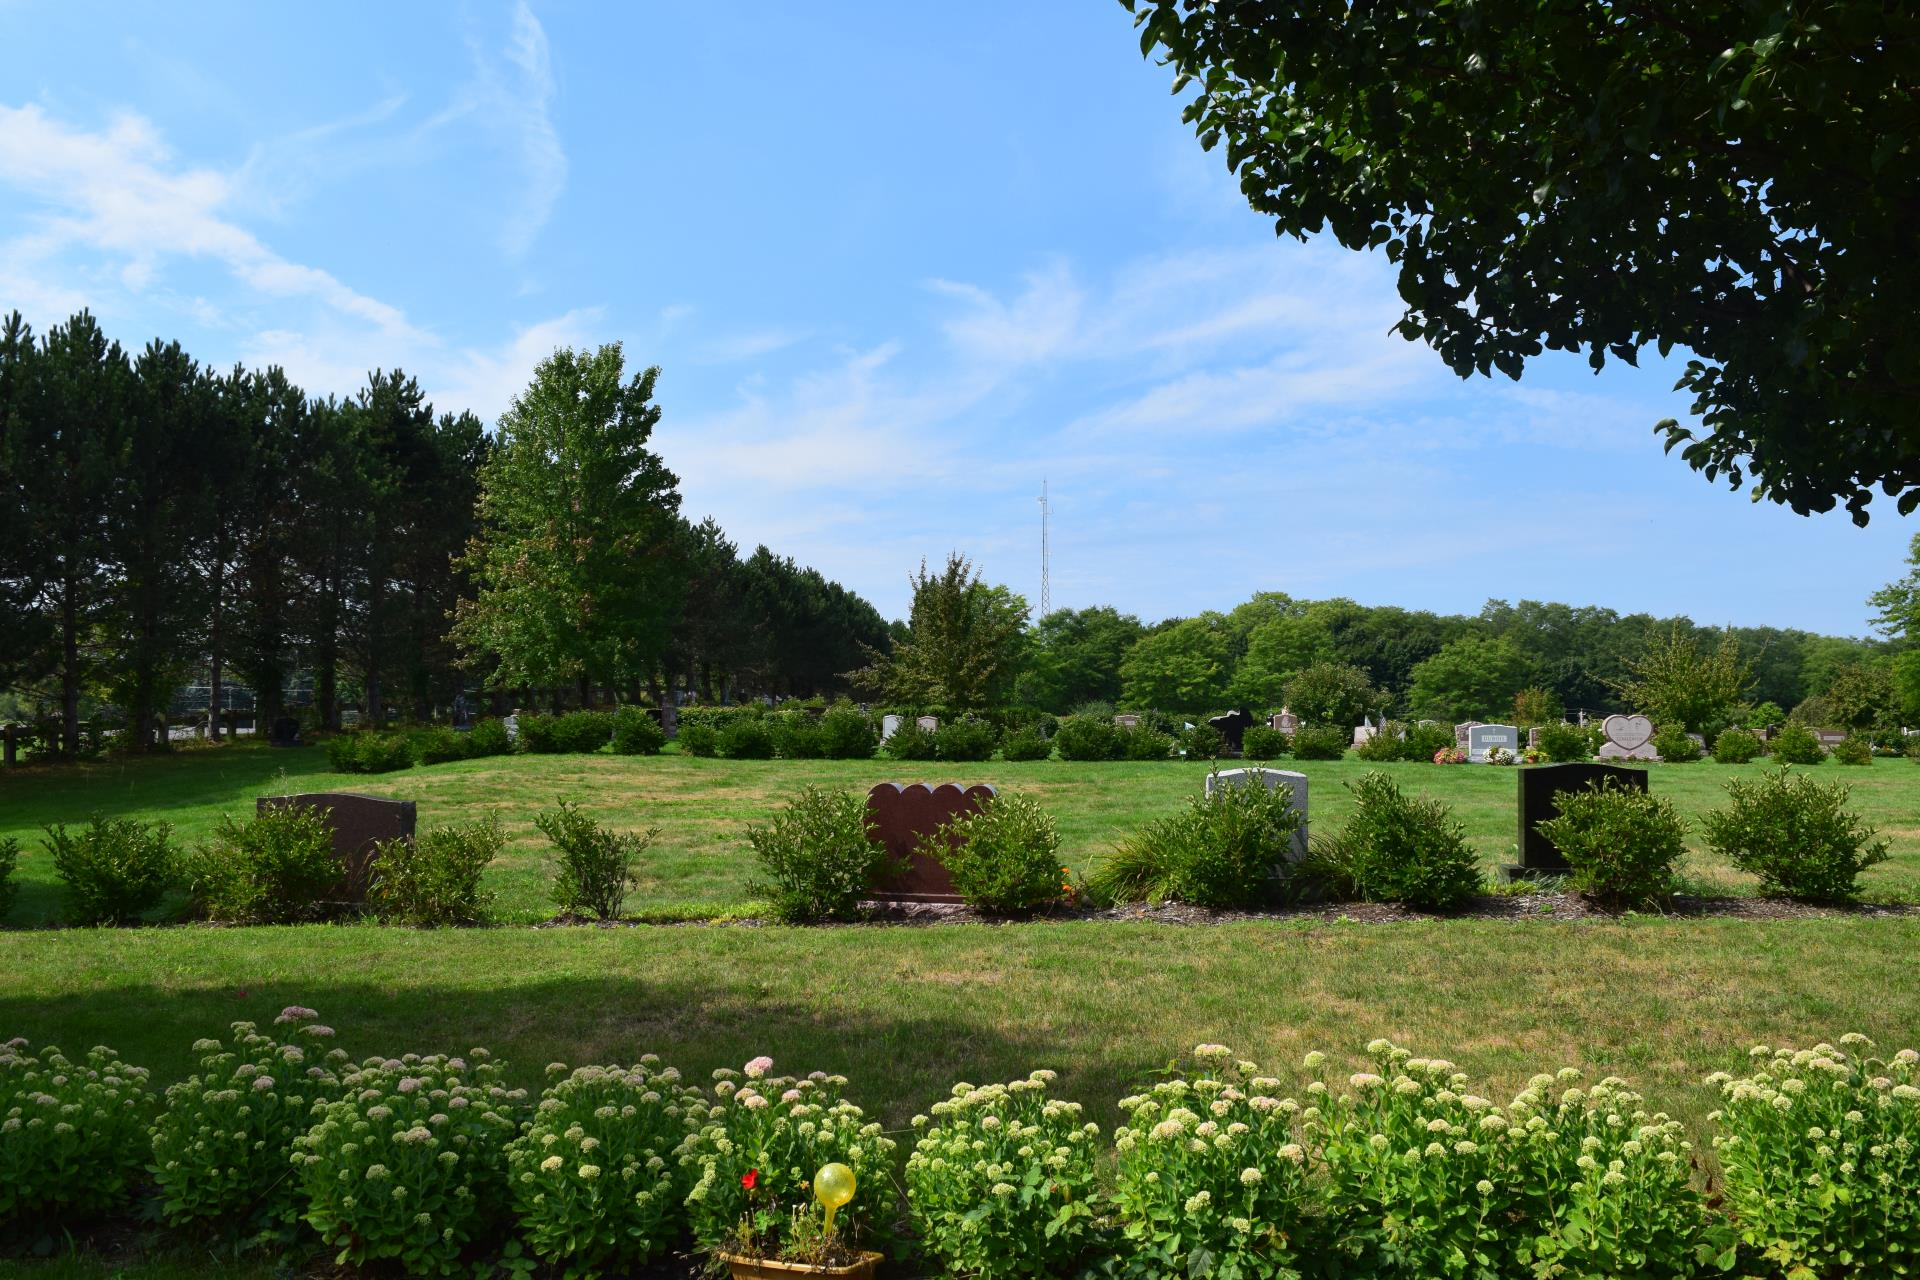 Grounds at St. Peter's Cemetery